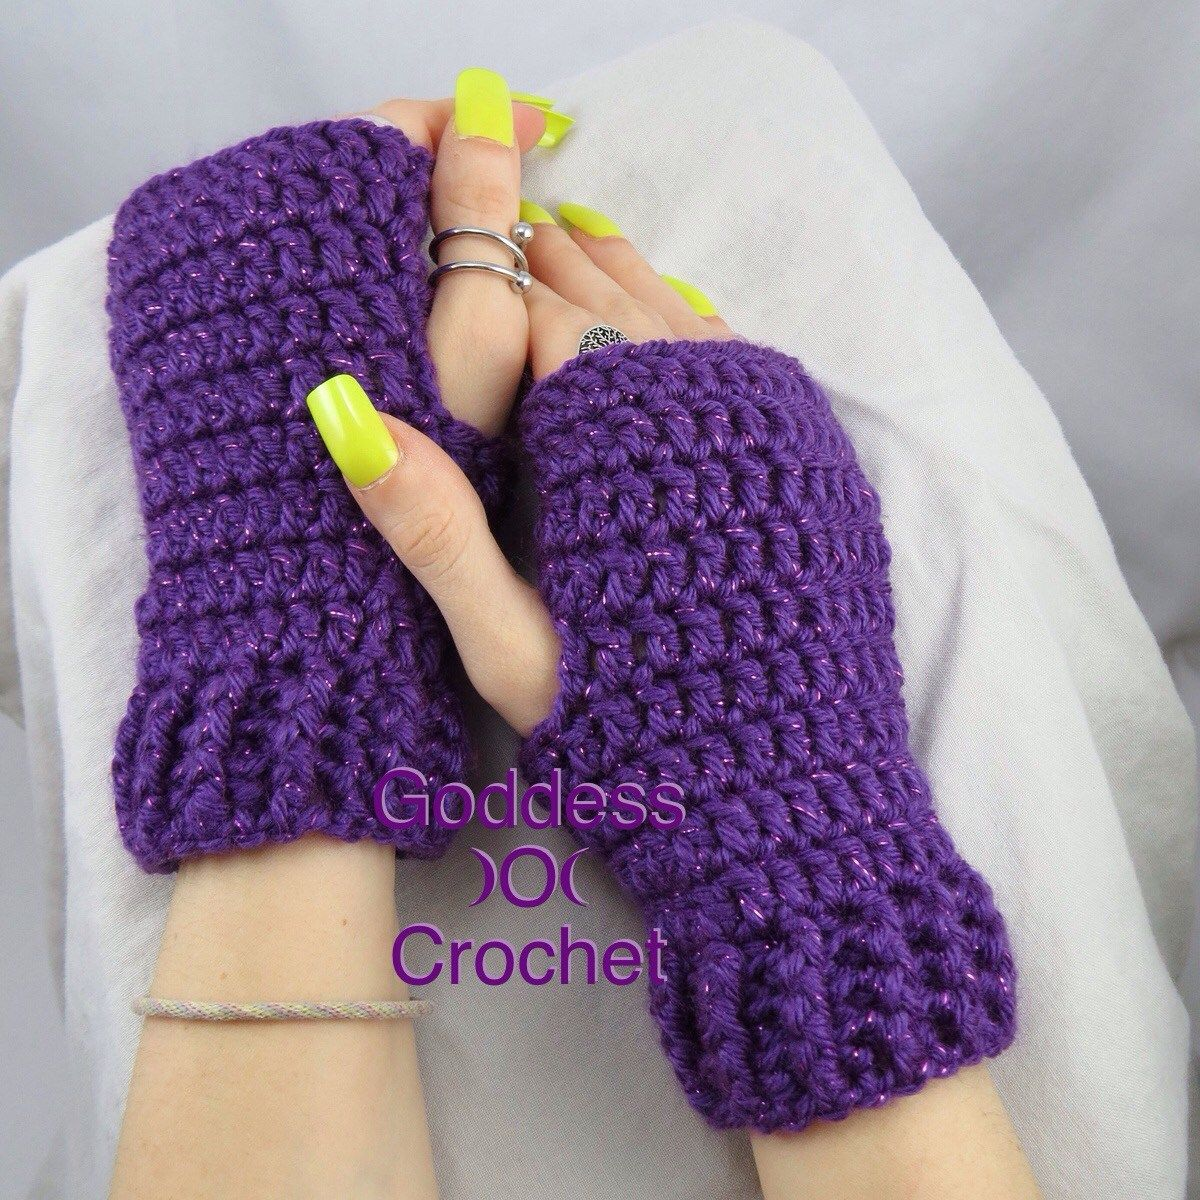 Simple Ribbed Cuff Wrist Warmers. Free Crochet Pattern. Goddess ...